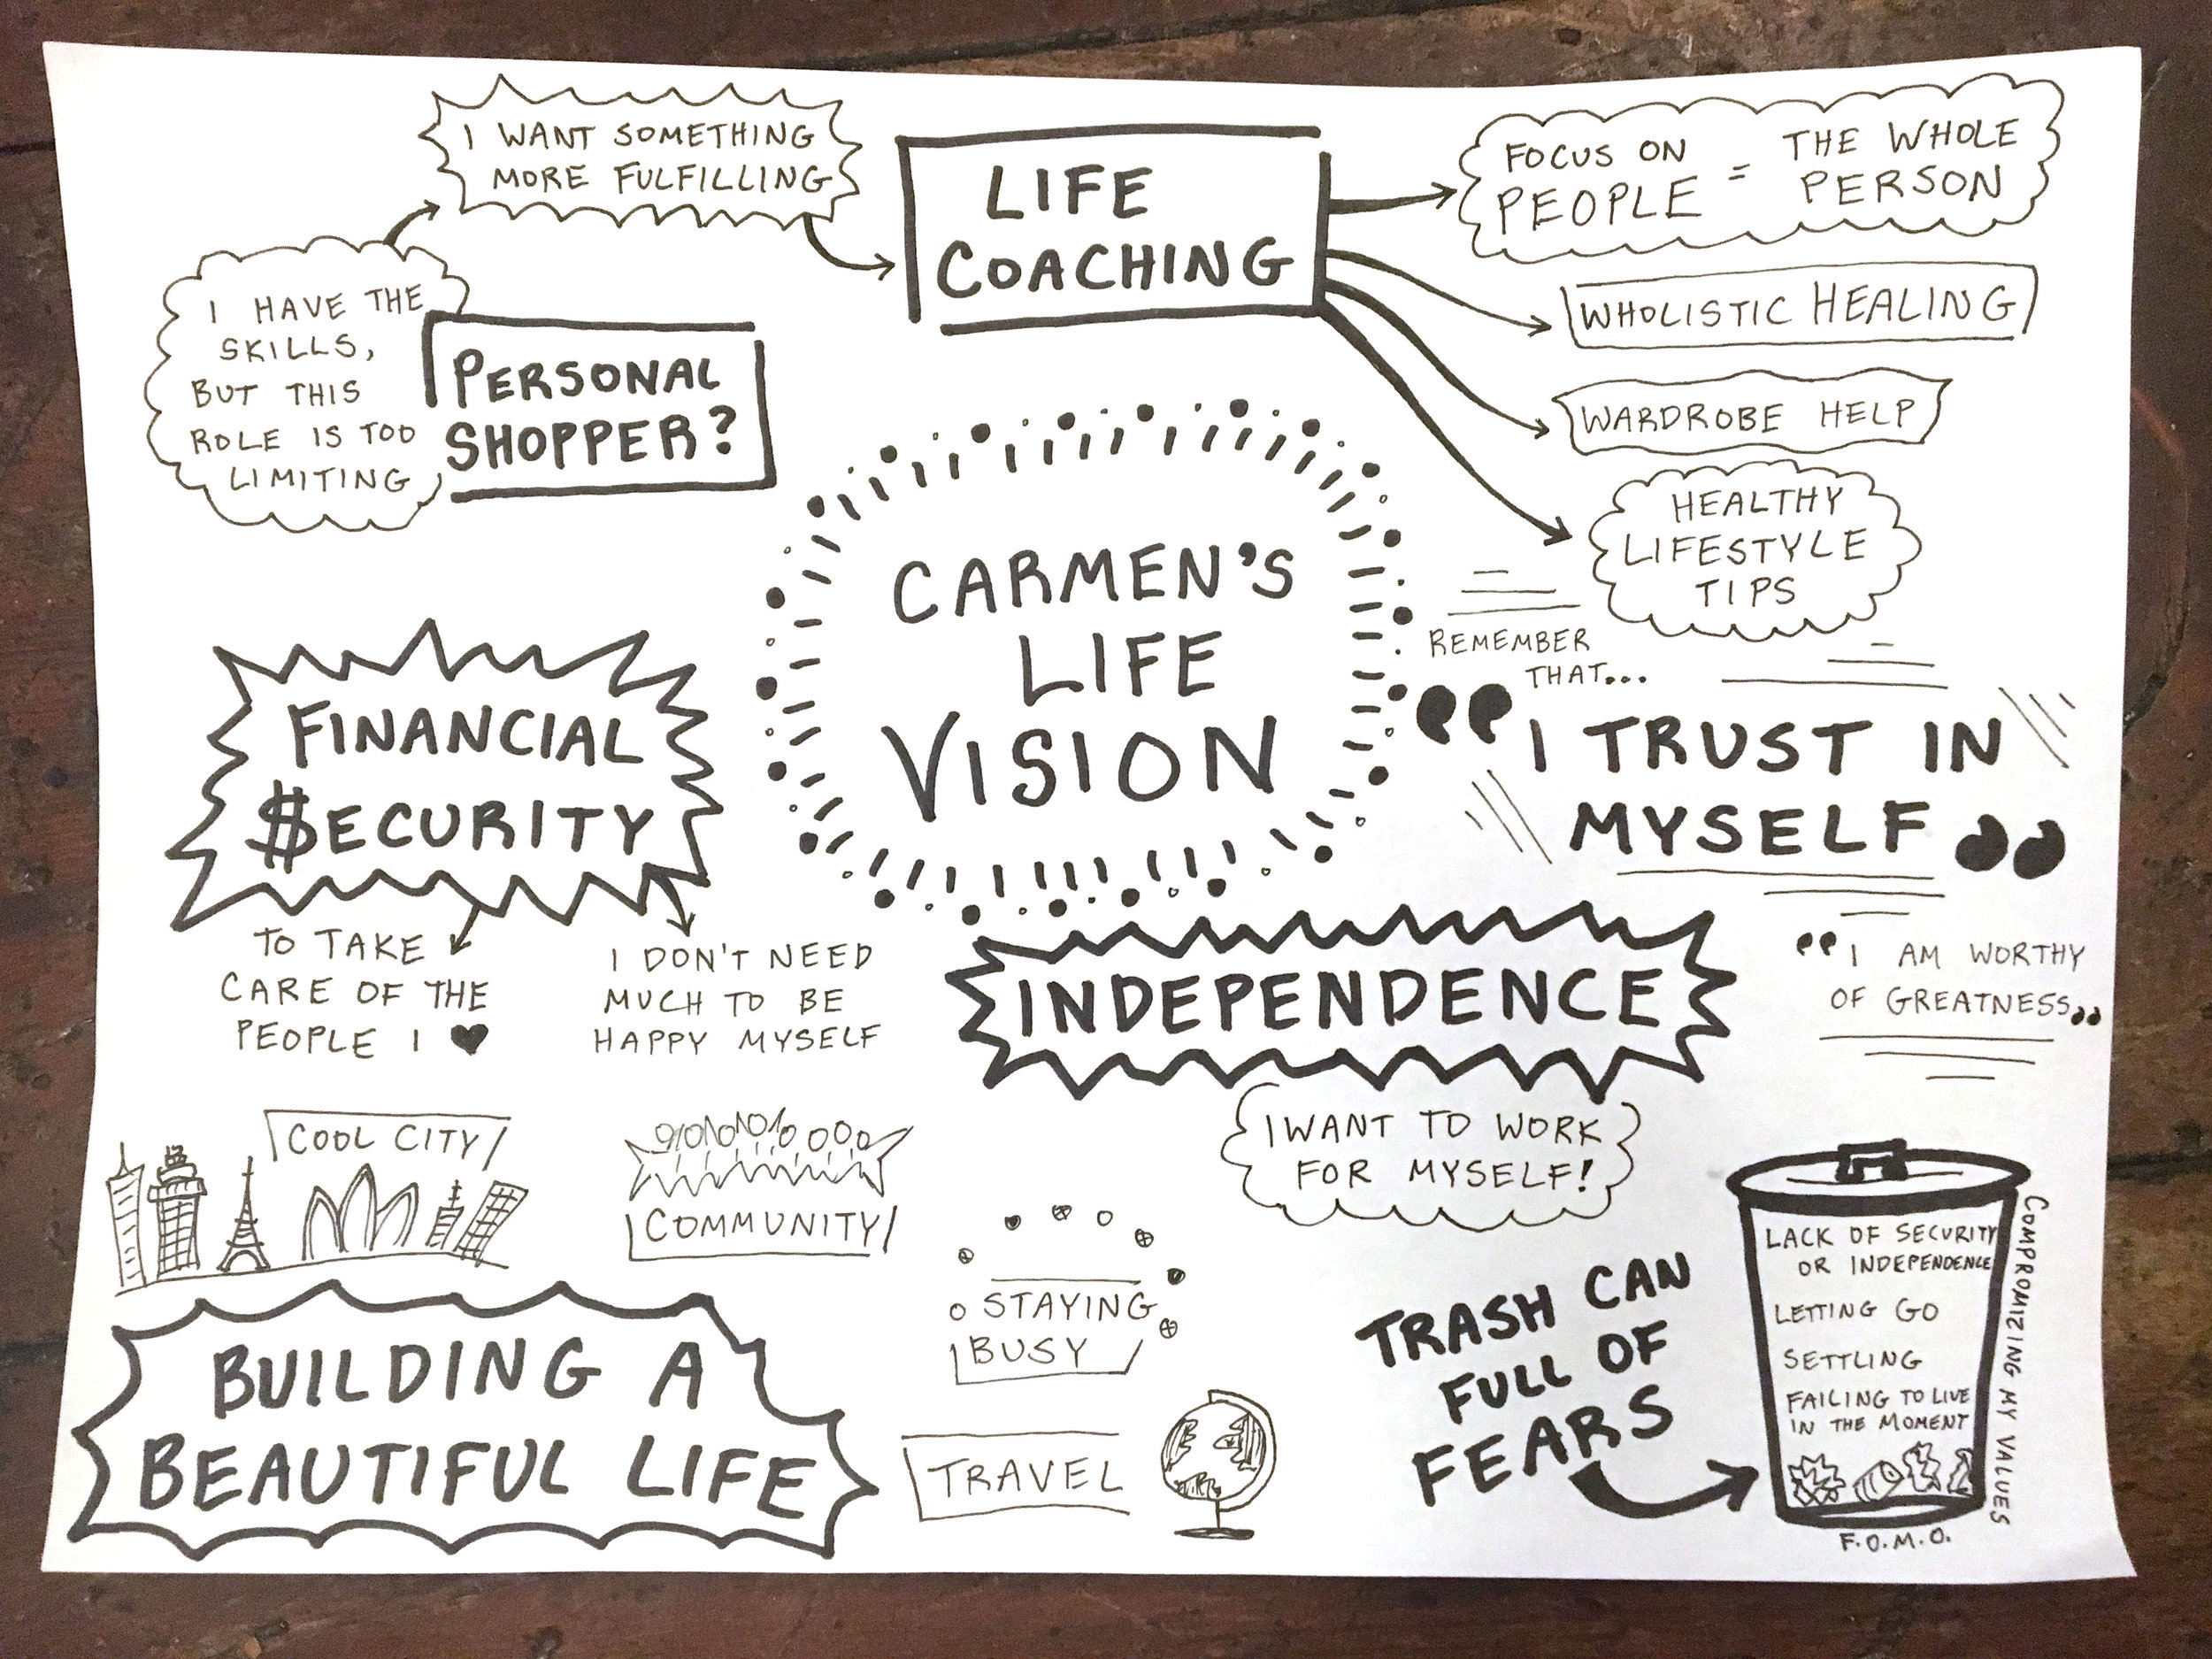 Life Visioning Session - Articulating and connecting passions and goals